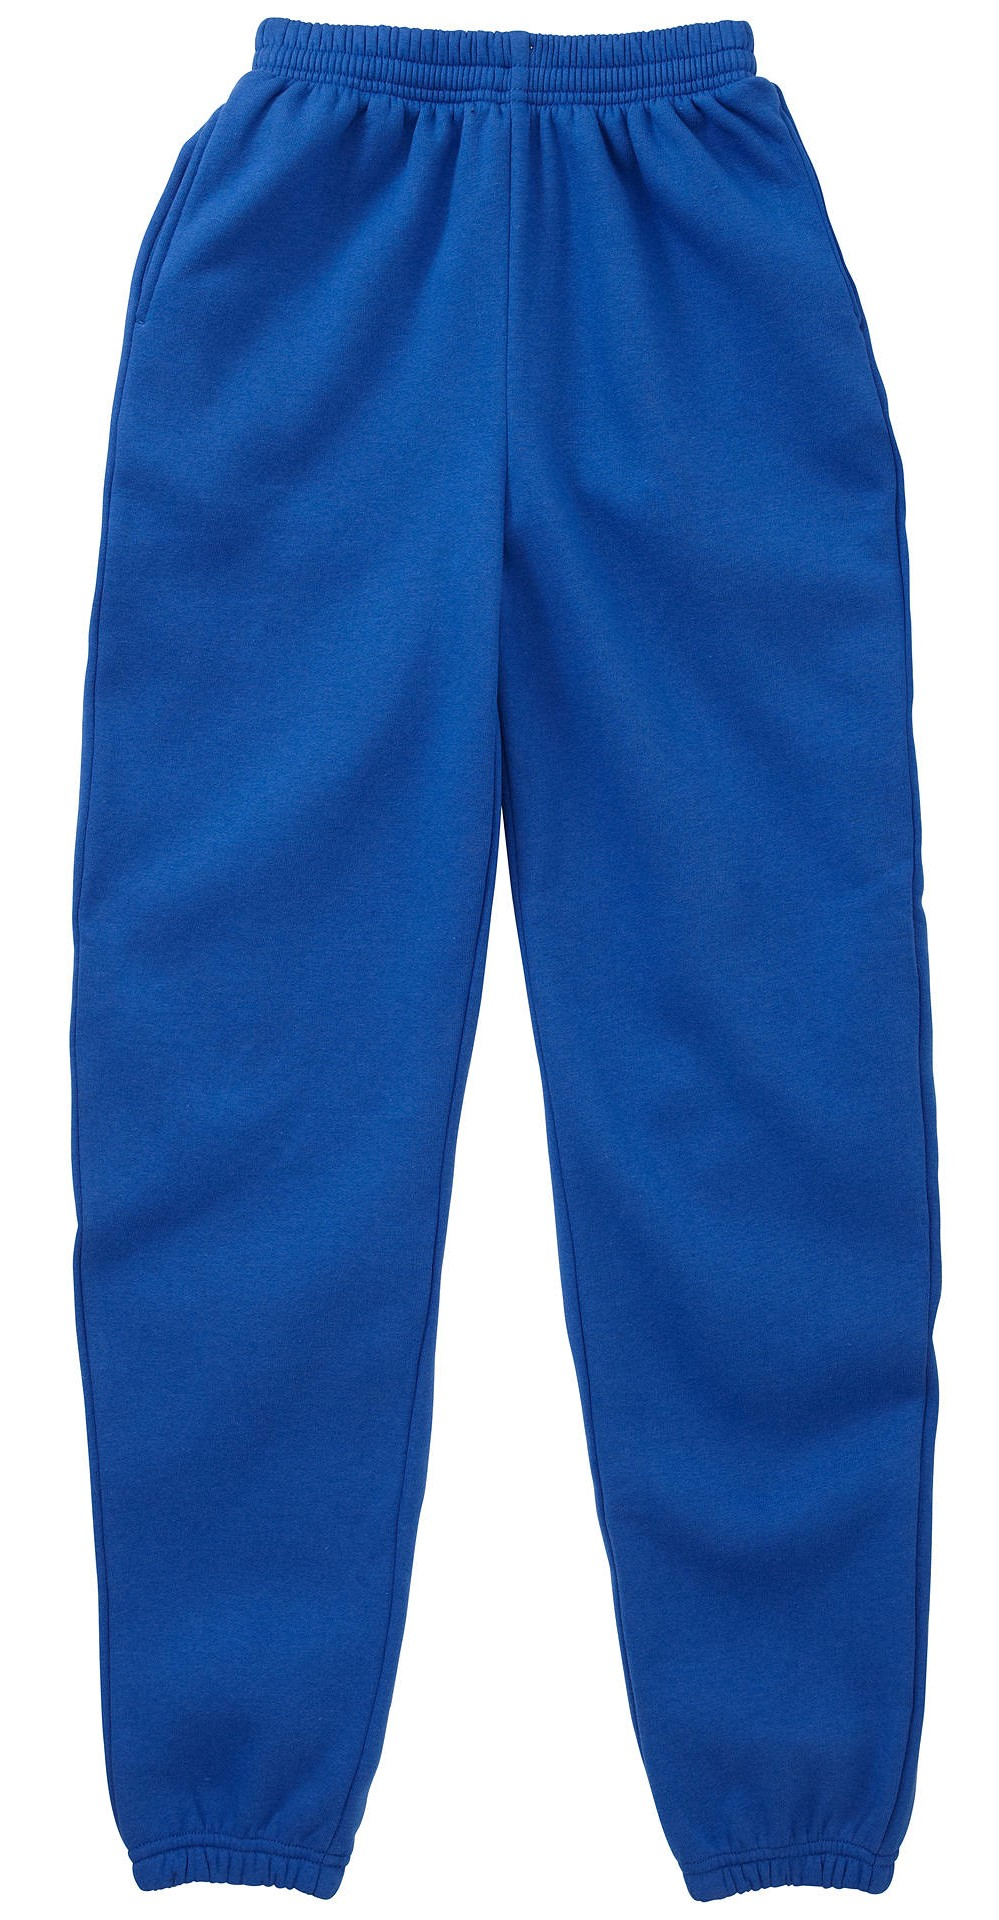 Phillipstown Primary Jog Pant